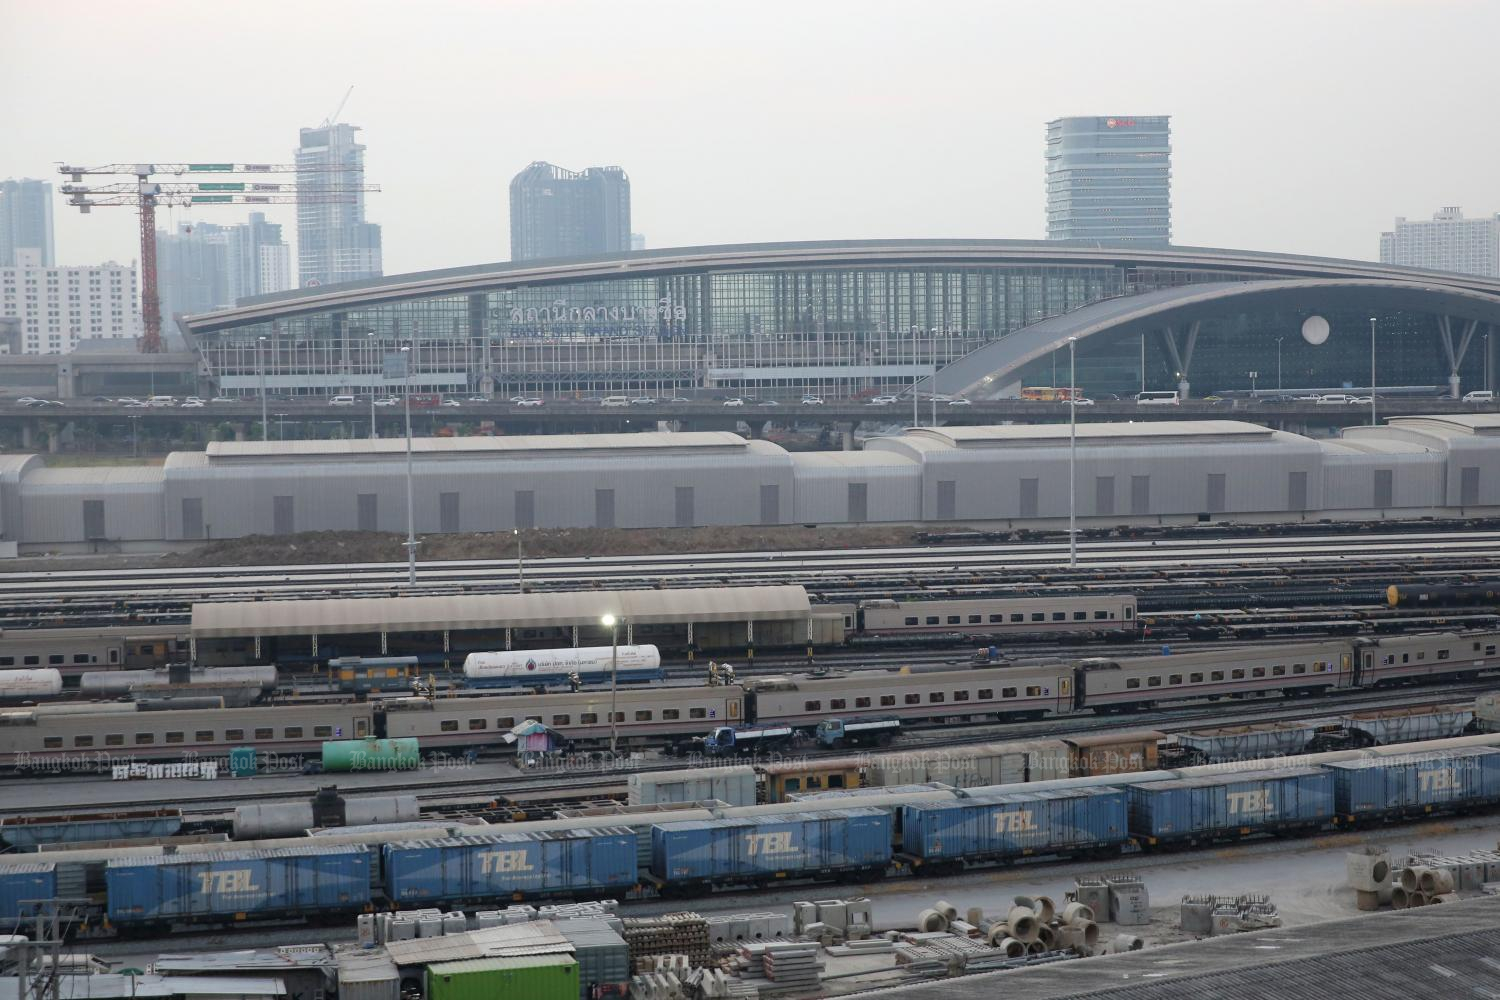 More than 90% of work on Bang Sue Central Station is now complete. Once finished, it will be the largest and most modern railway station in Asean.